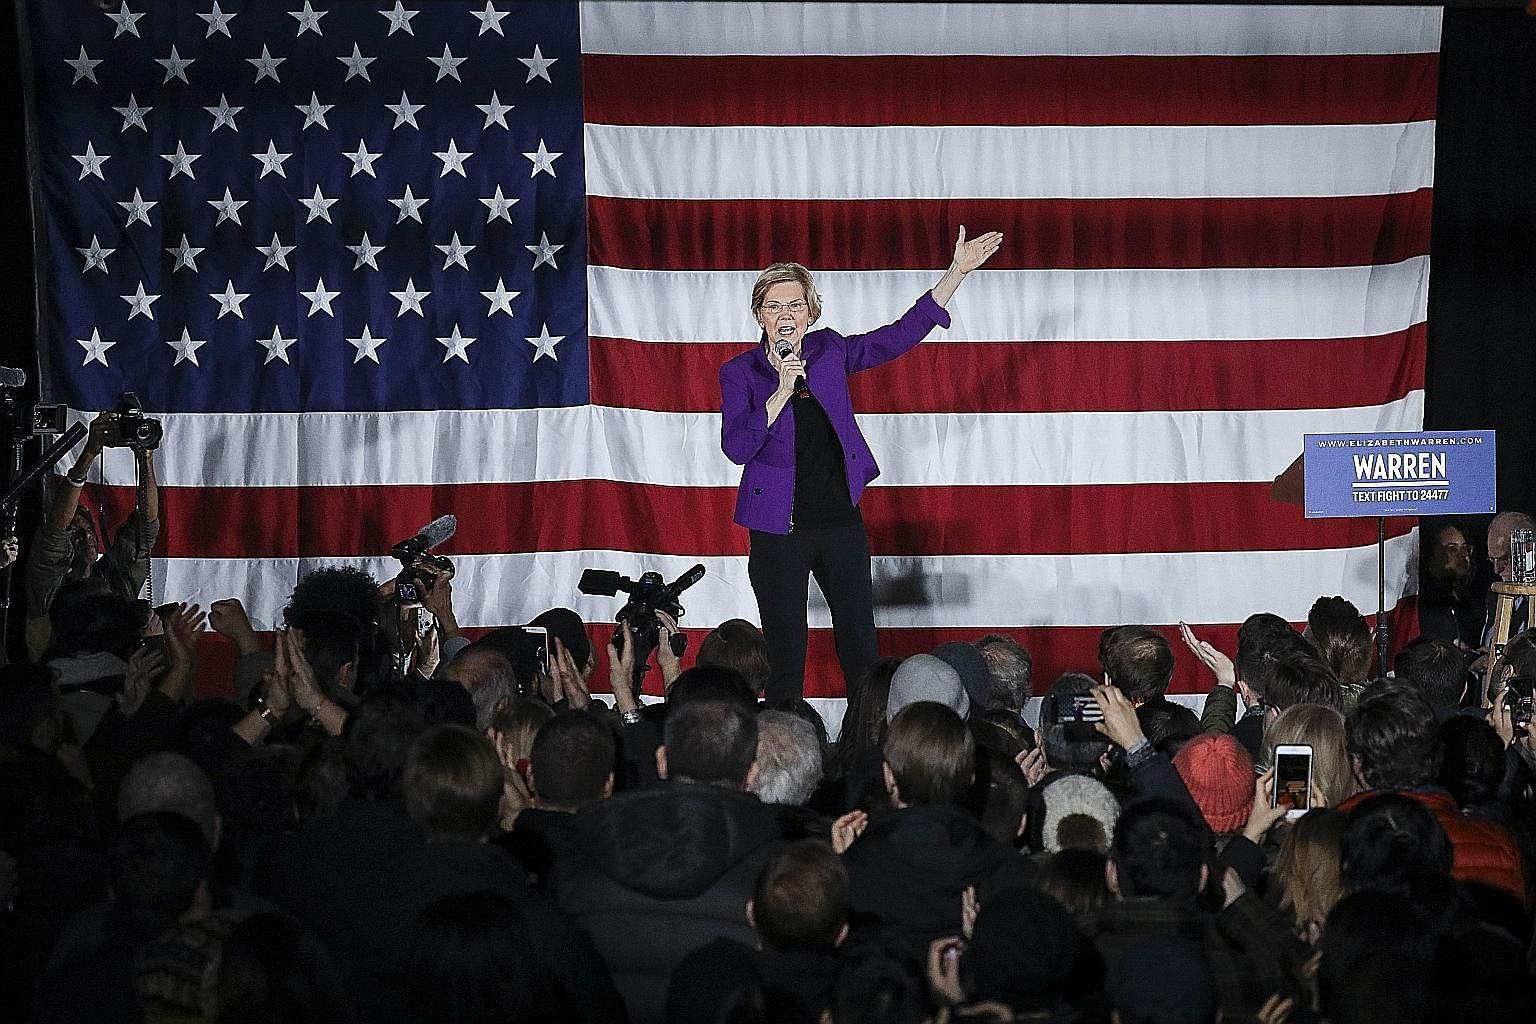 Democratic presidential hopeful Elizabeth Warren speaking before a crowd in Queens, New York City, on Friday.